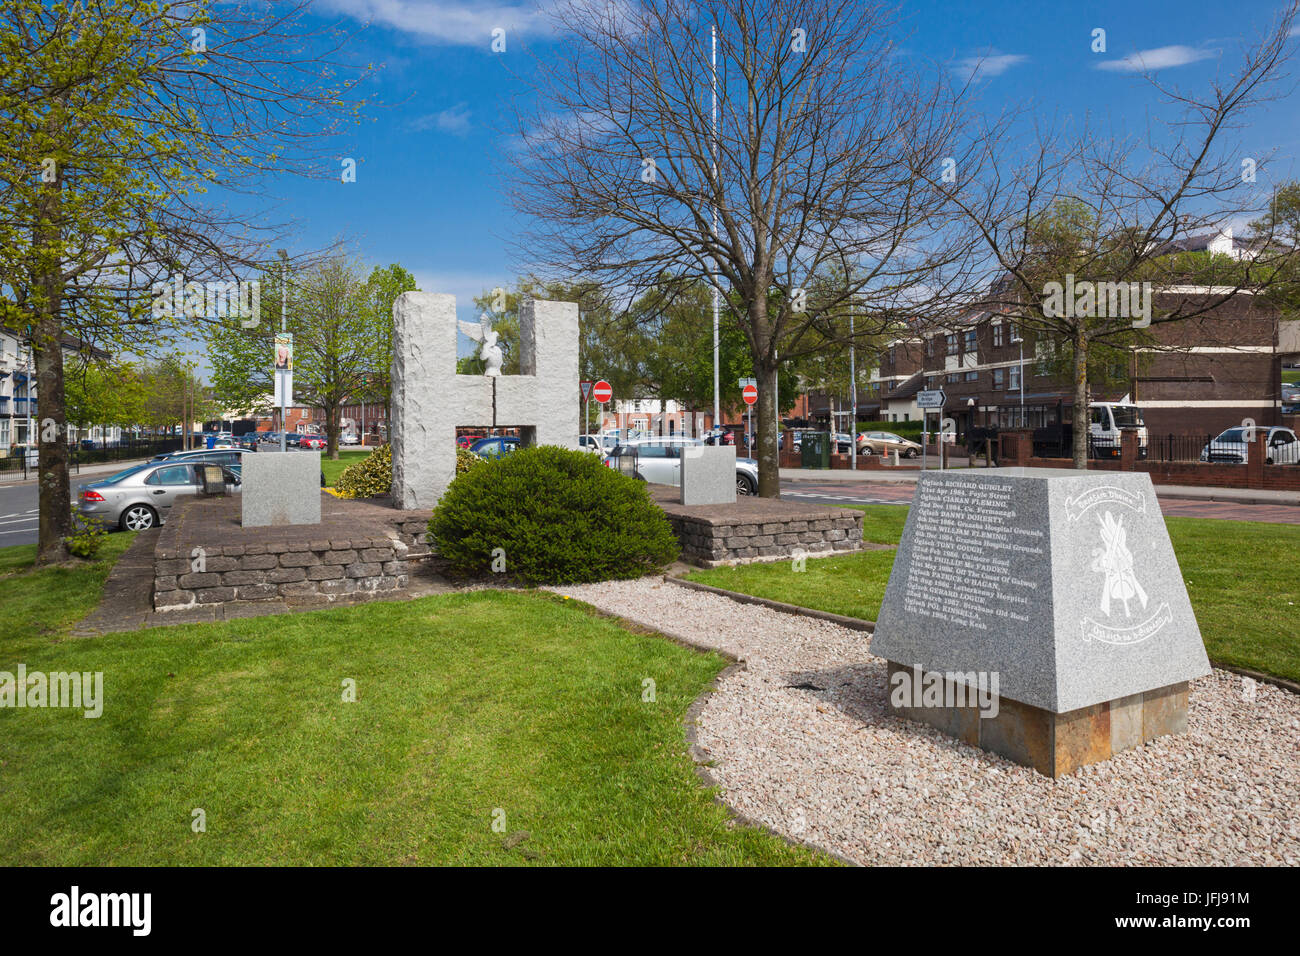 UK, Northern Ireland, County Londonderry, Derry, Bogside area, Bloody Sunday Memorial to mass shooting of Republican - Stock Image